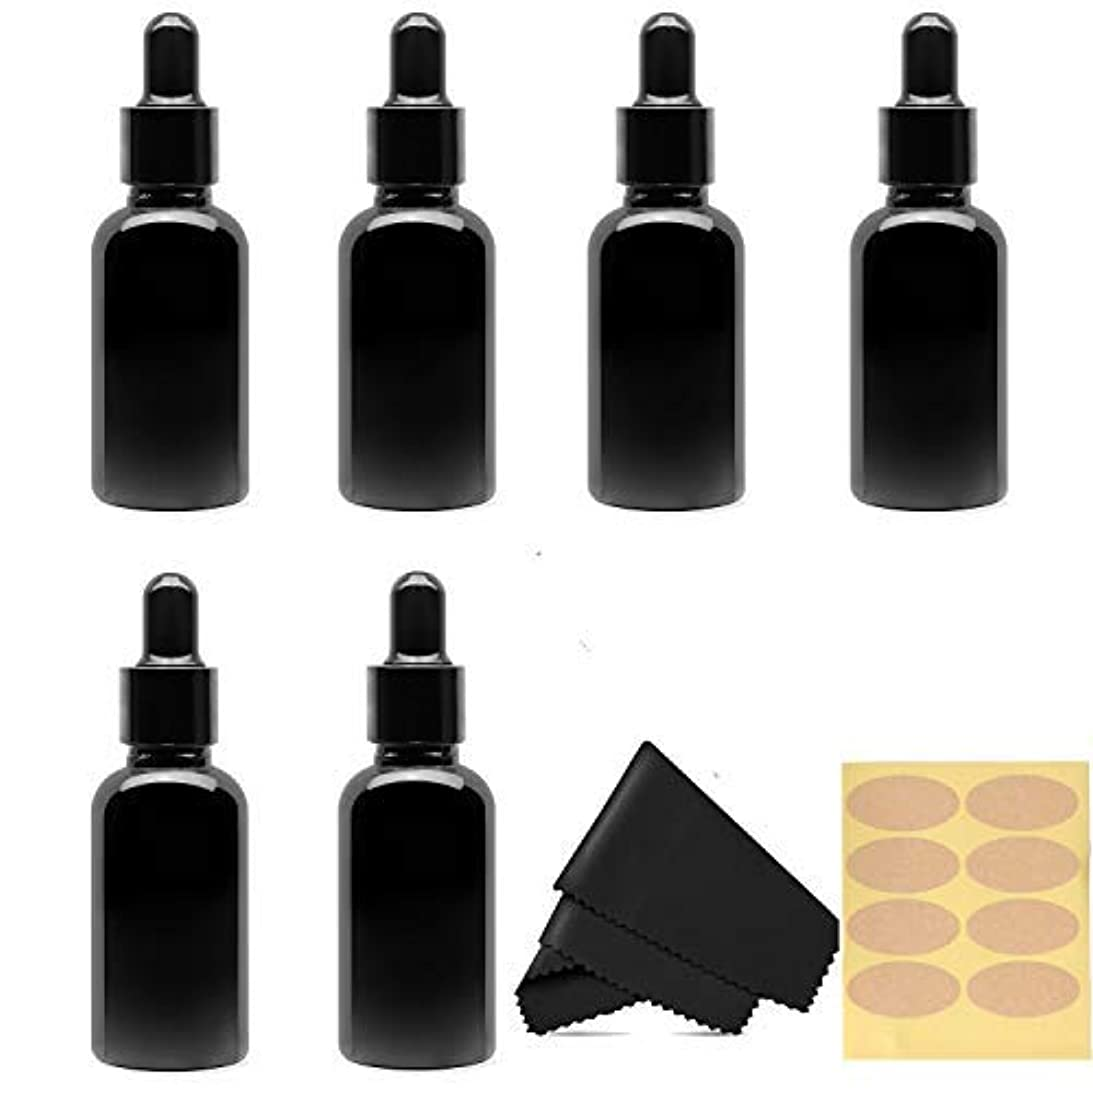 30 Ml (1 fl oz) Black Glass Essential Oil Bottles with Eye Droppers, 6 Pack [並行輸入品]